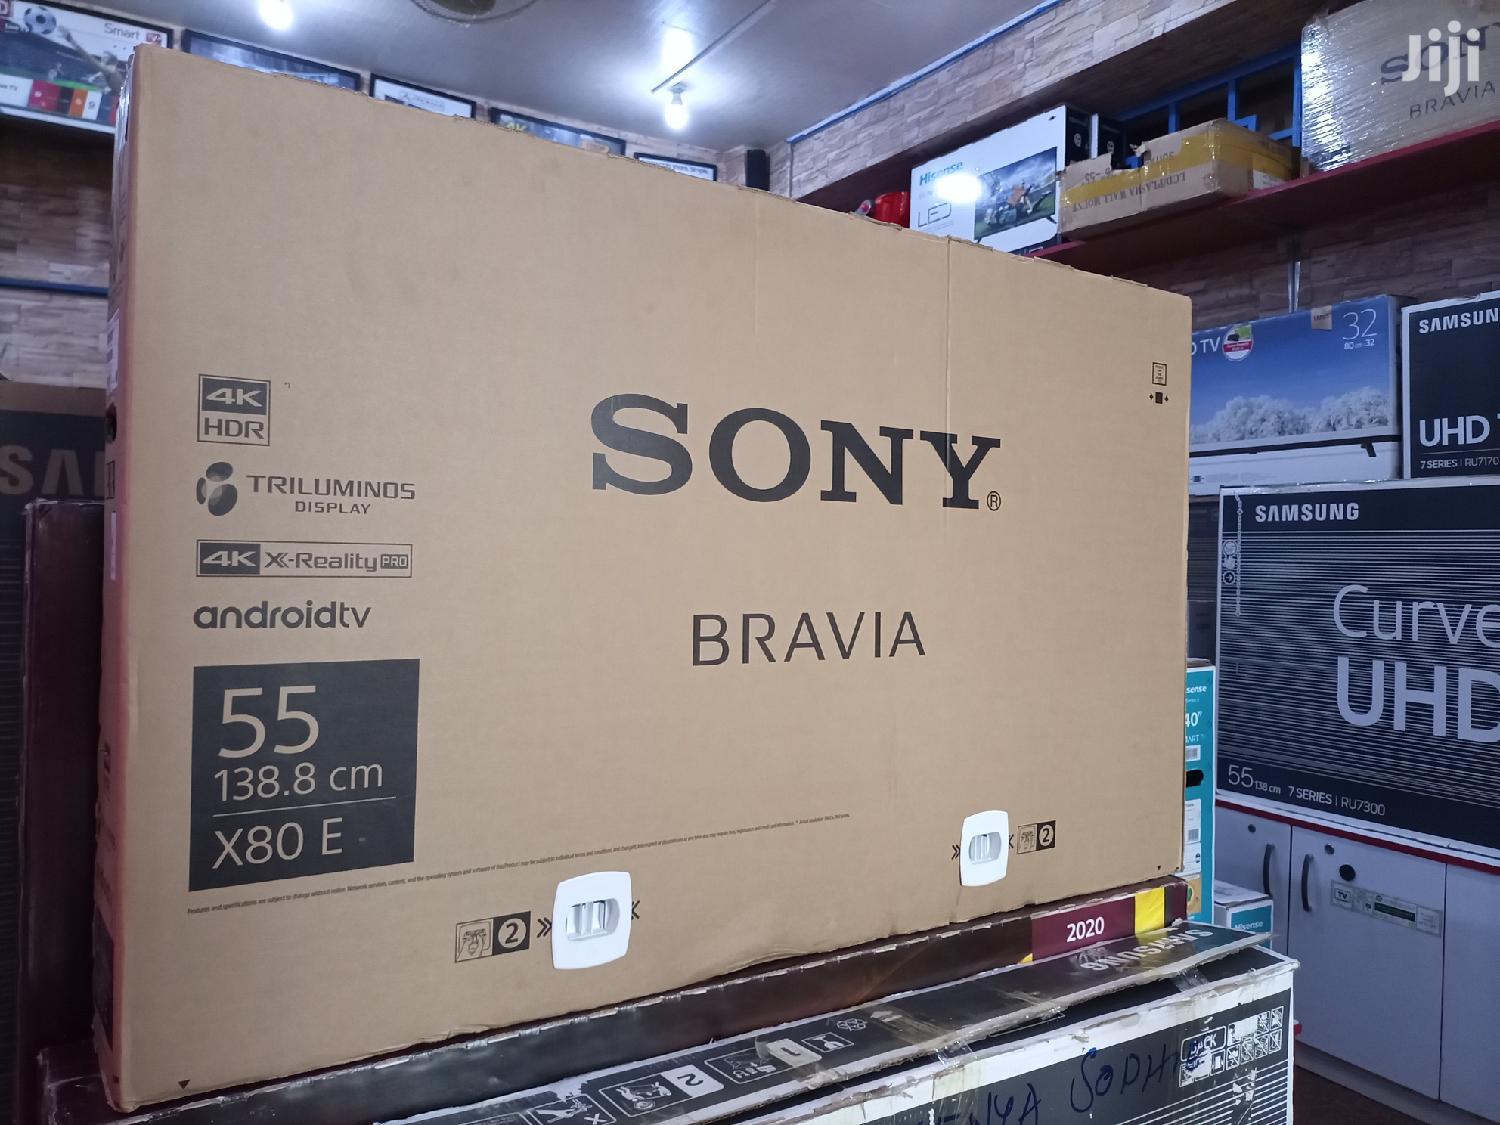 New Sony Bravia Smart Ultra Hd Android Flat Screen TV 55 Inches